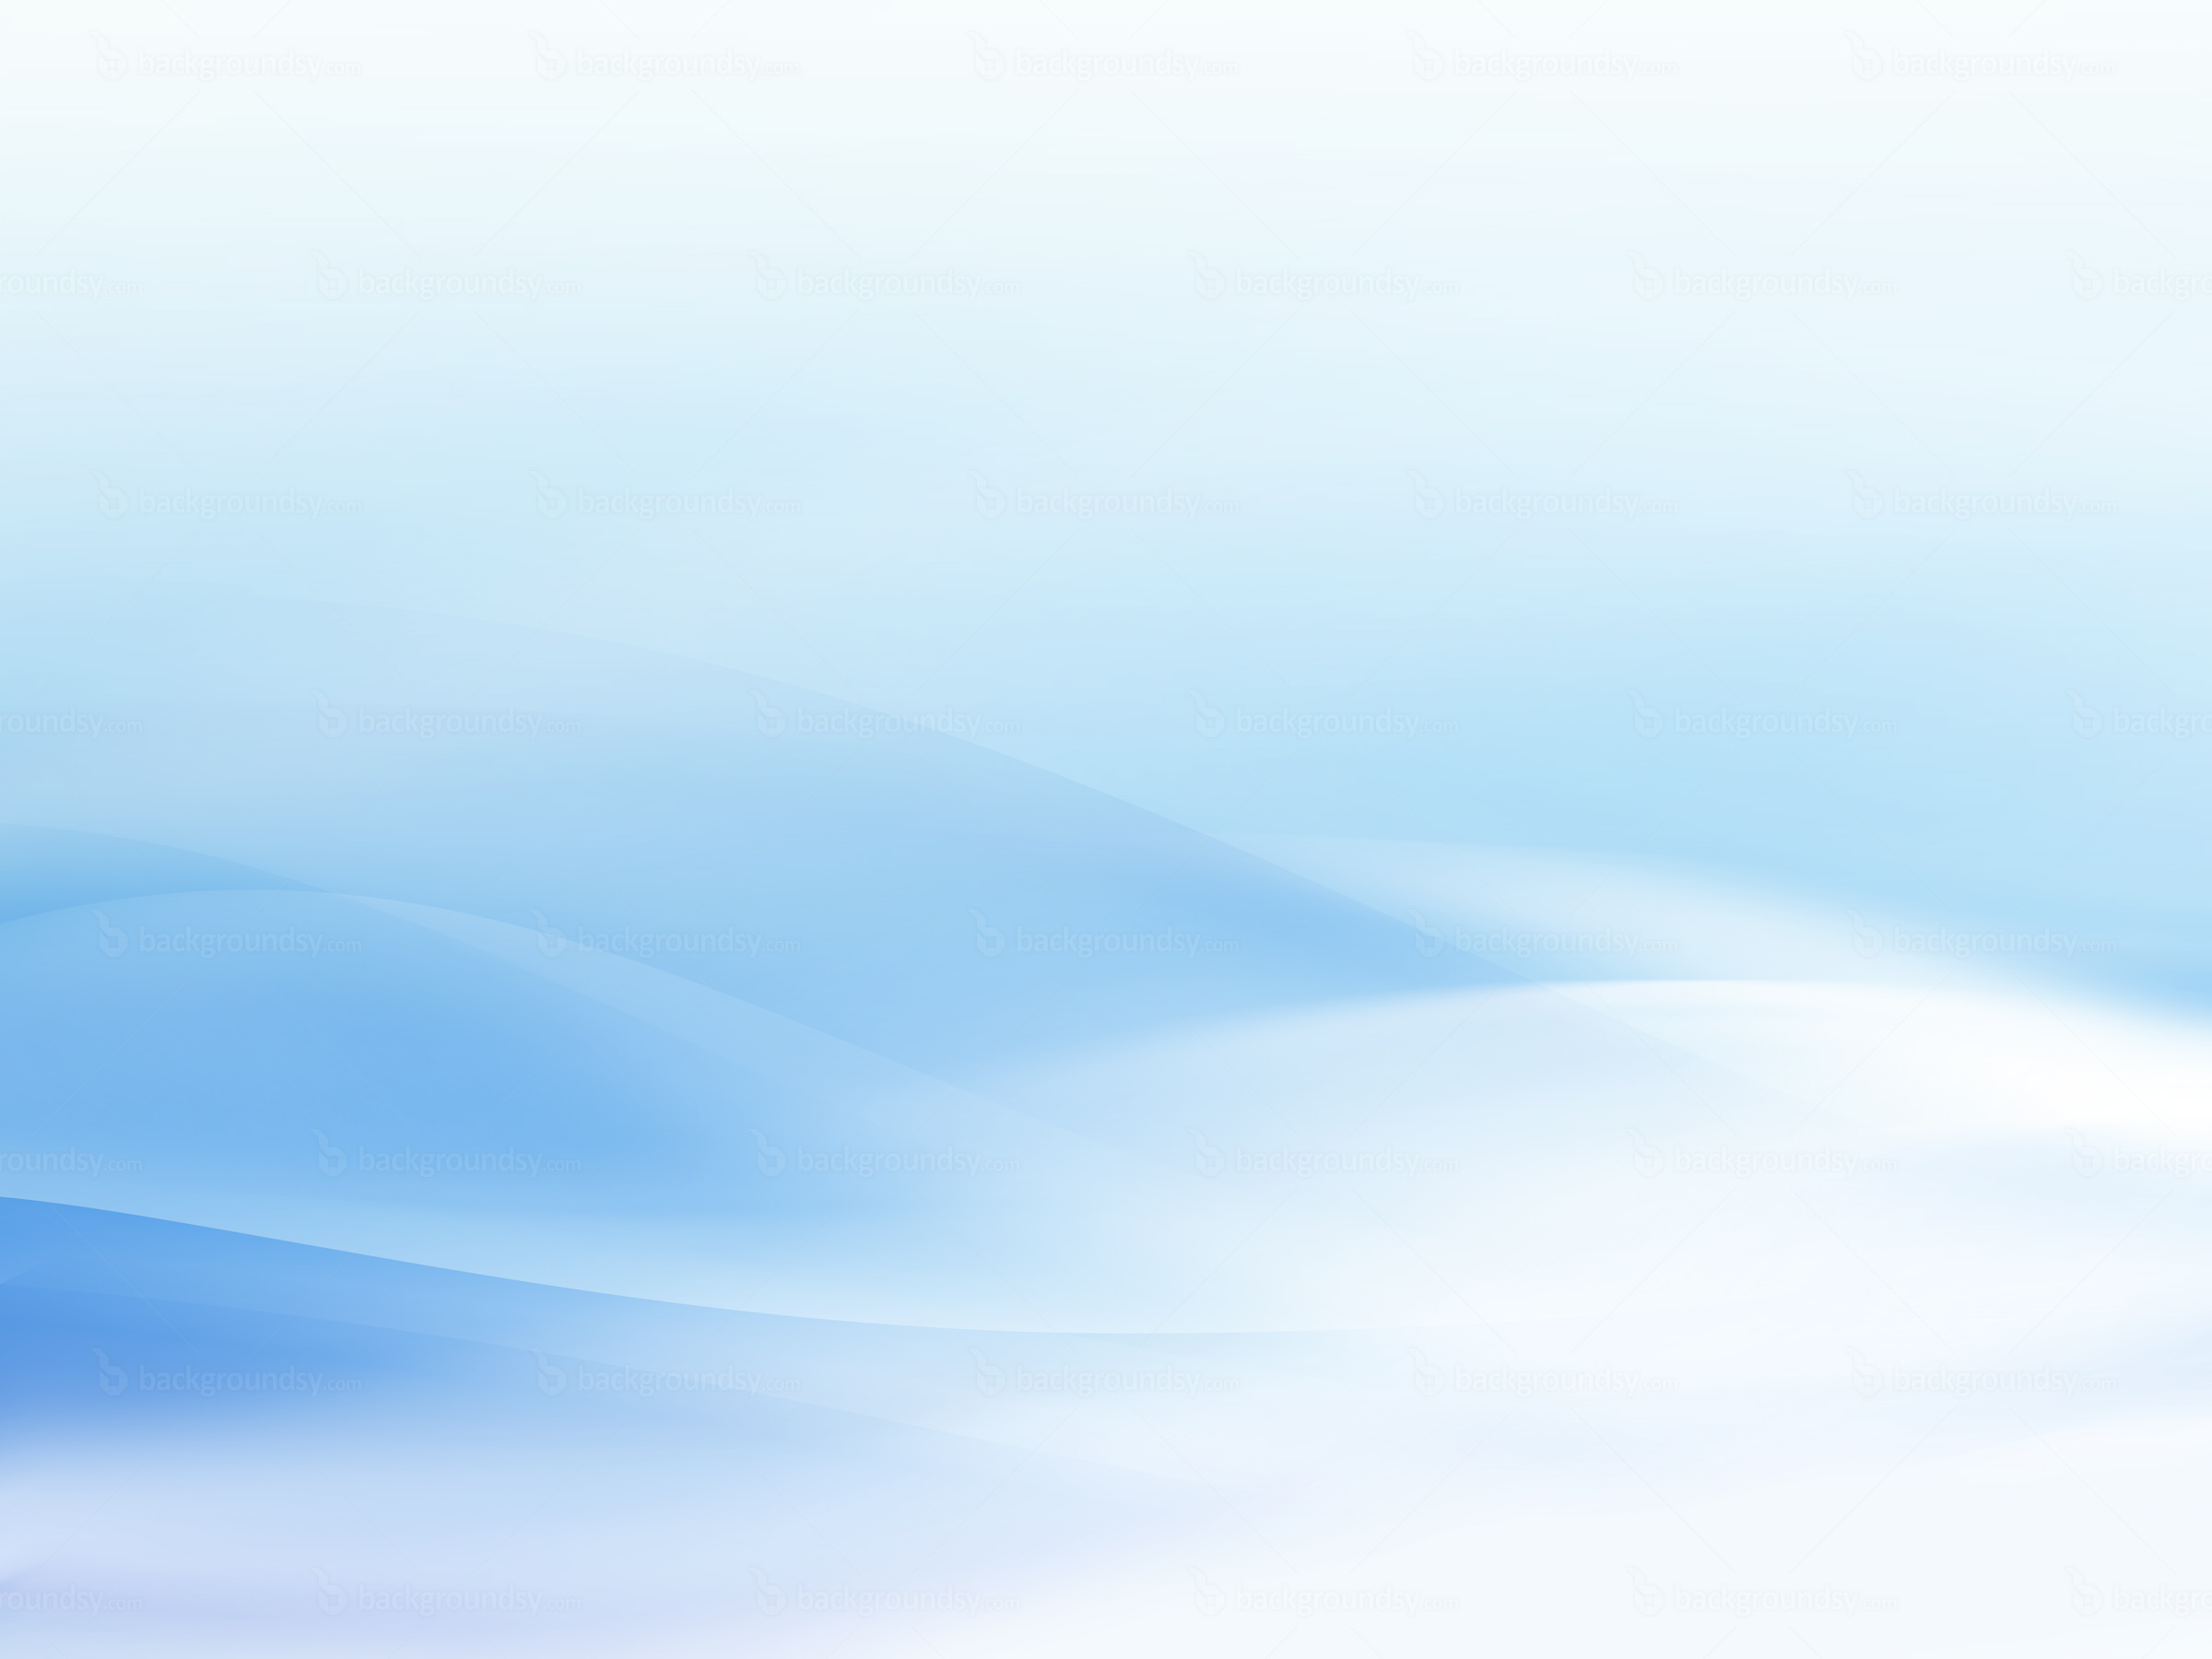 Light Blue Background Backgroundsycom HTML Code